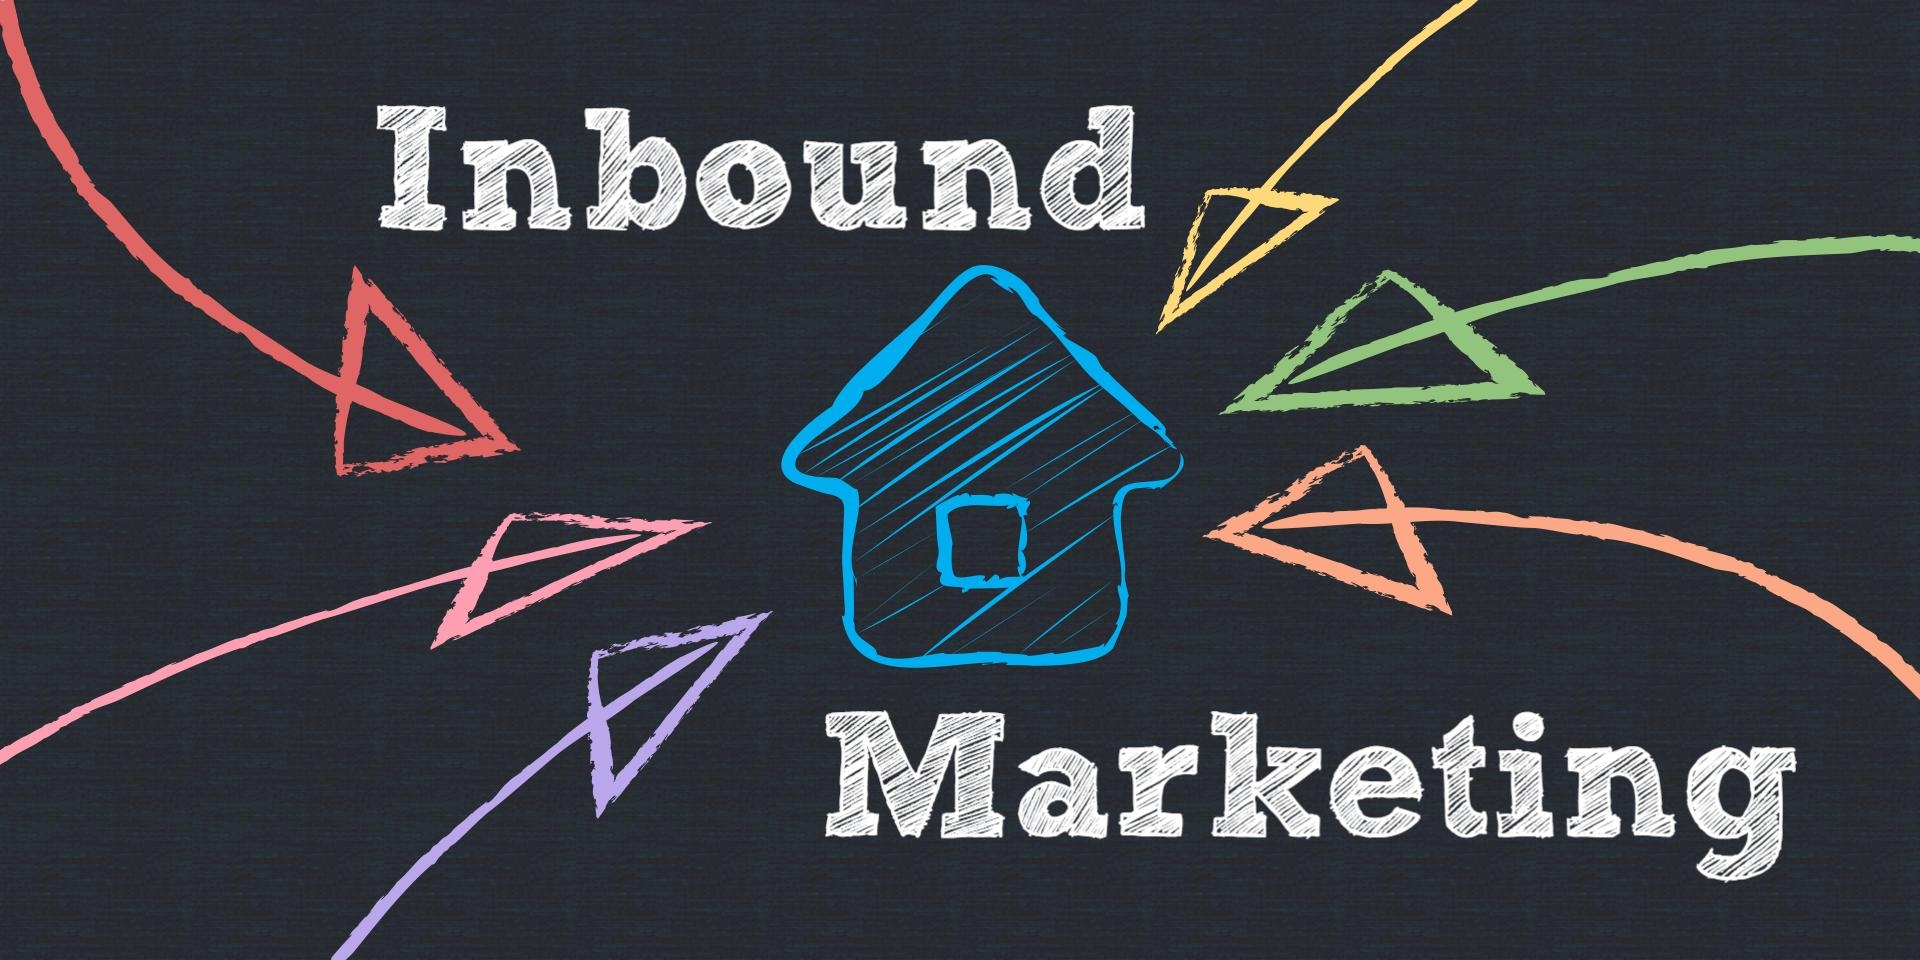 Inbound-marketing1-1.jpg